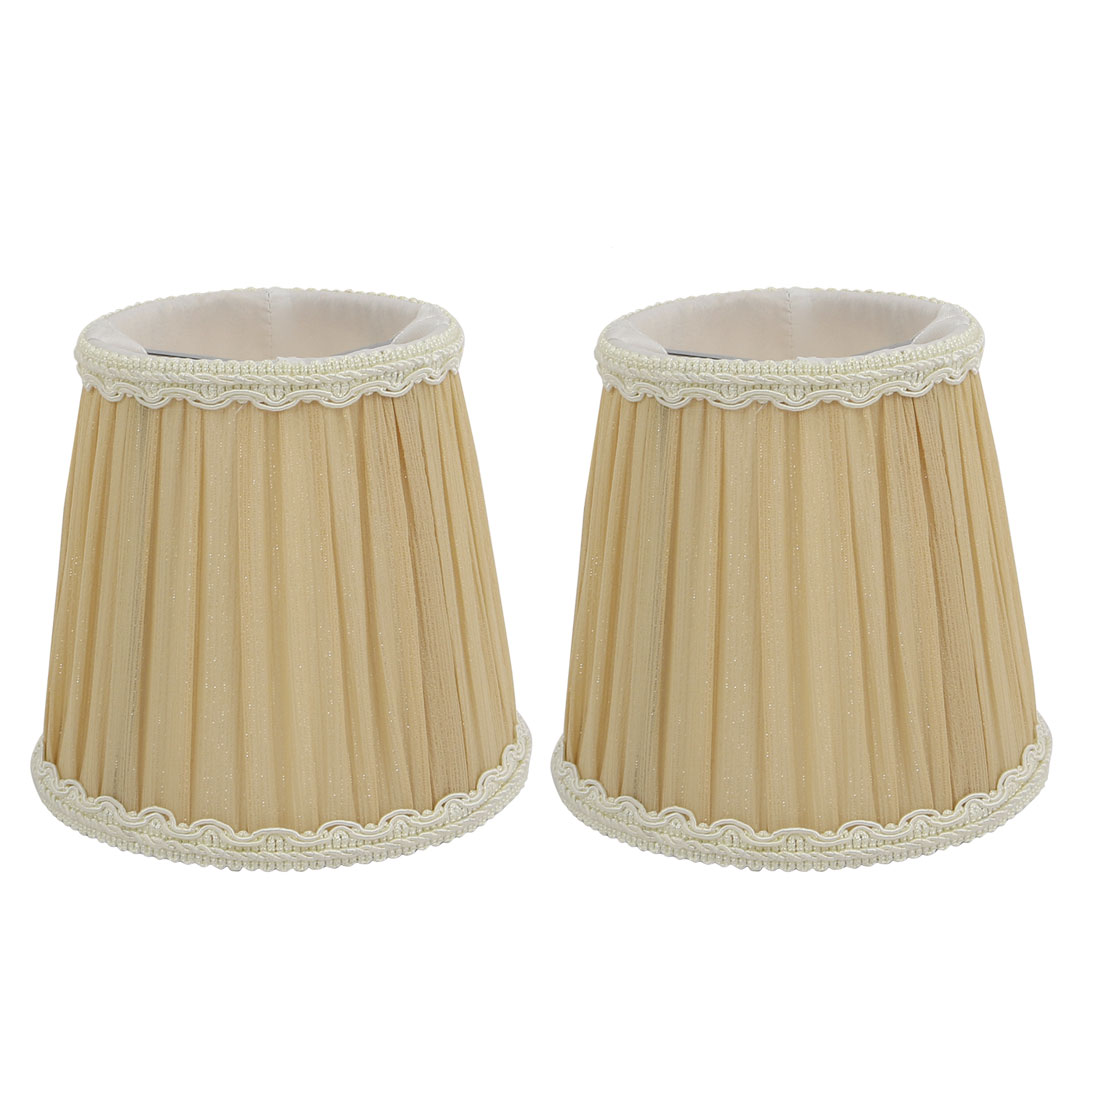 2pcs DropLight Shade Chandelier Clip-On Lampshade Apricot yellow Fabric-Covered by